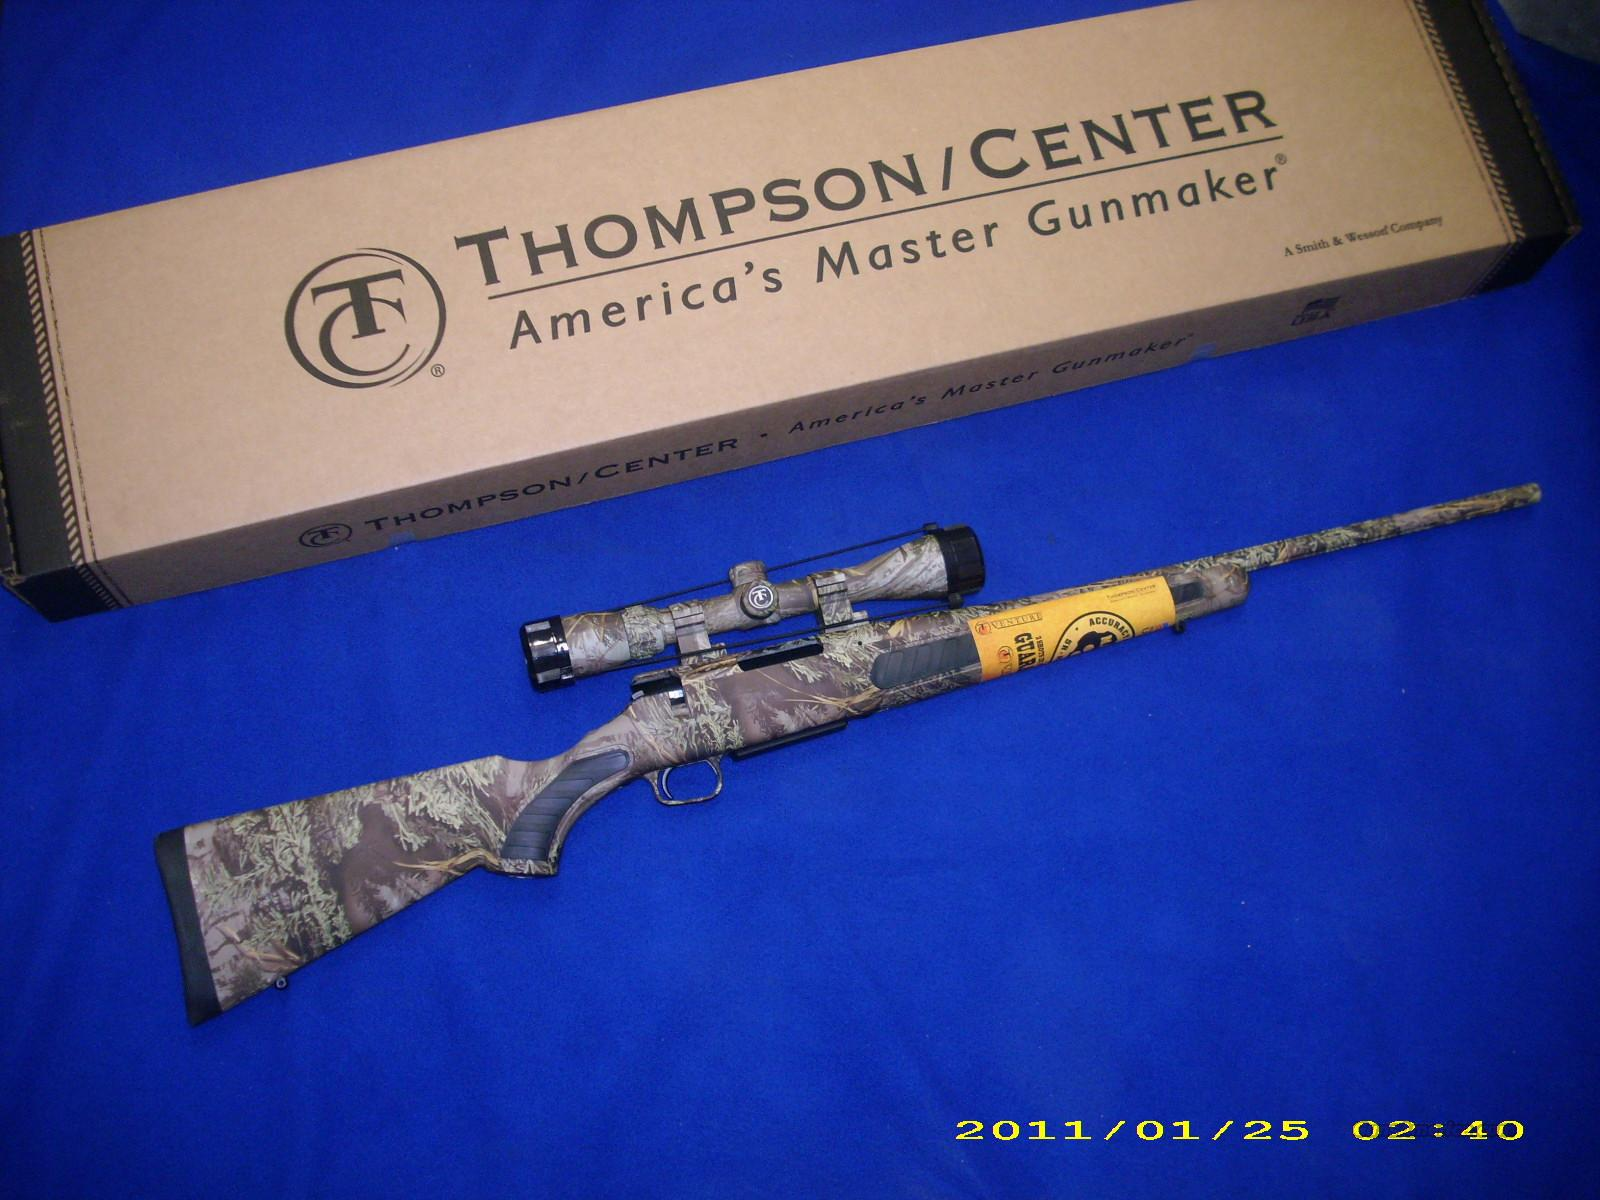 Thompson Center Venture Predator 204 Ruger,22-250,308,223 Cal  w/ Scope